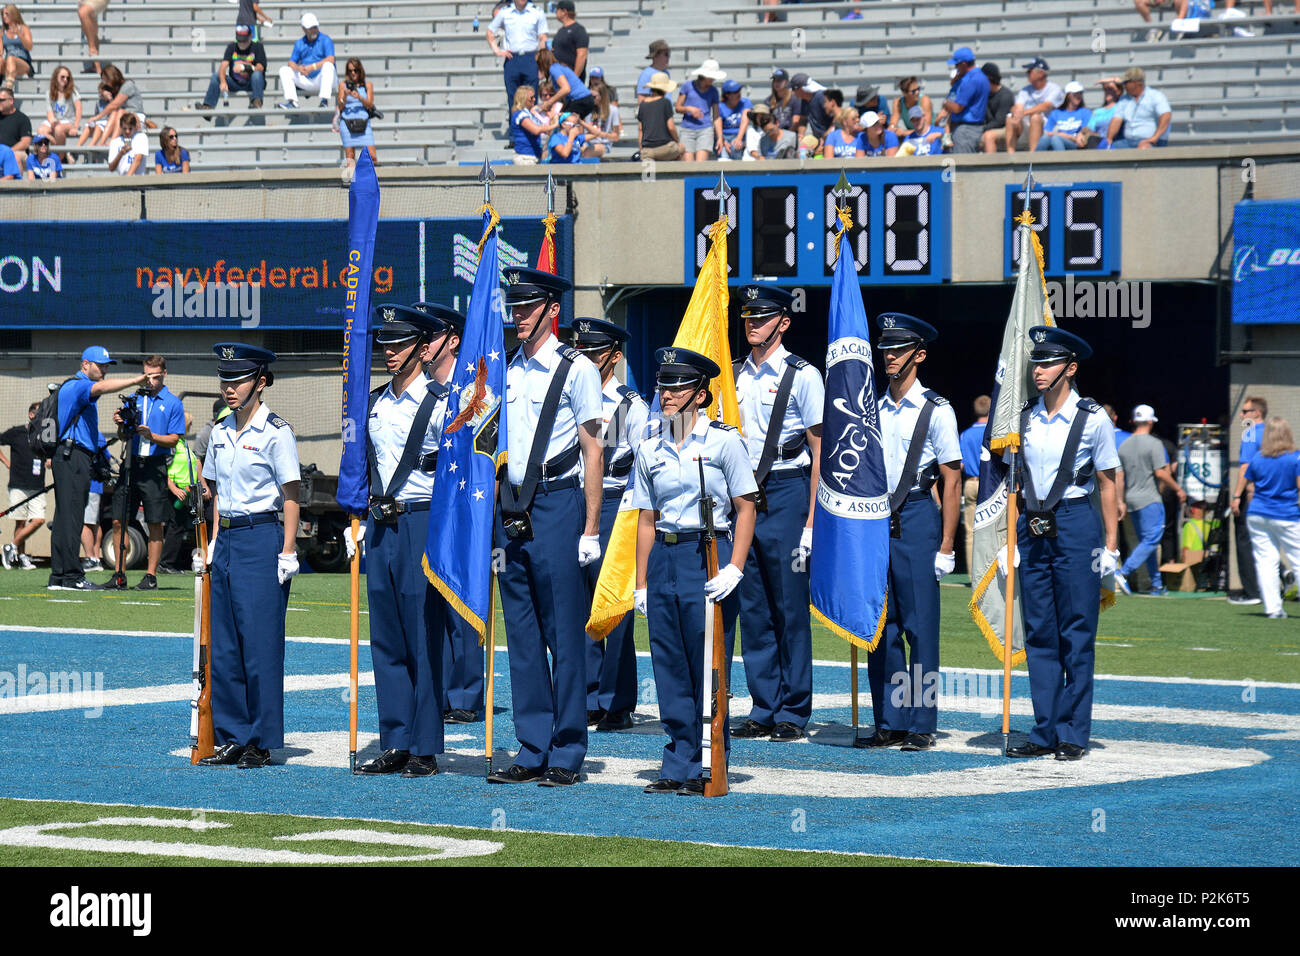 The Cadet Honor Guard enters Falcon Stadium during pre-game ceremonies before the Air Force vs. Virginia Military Institute football game at Falcon Stadium  at the U.S. Air Force Academy, Colo., Sept. 2, 2017. The Falcons defeated the Keydets 62-0, moving to 11-0 in season openers under head coach Troy Calhoun.  (U.S. Air Force photo/ Jason Gutierrez) (released) - Stock Image